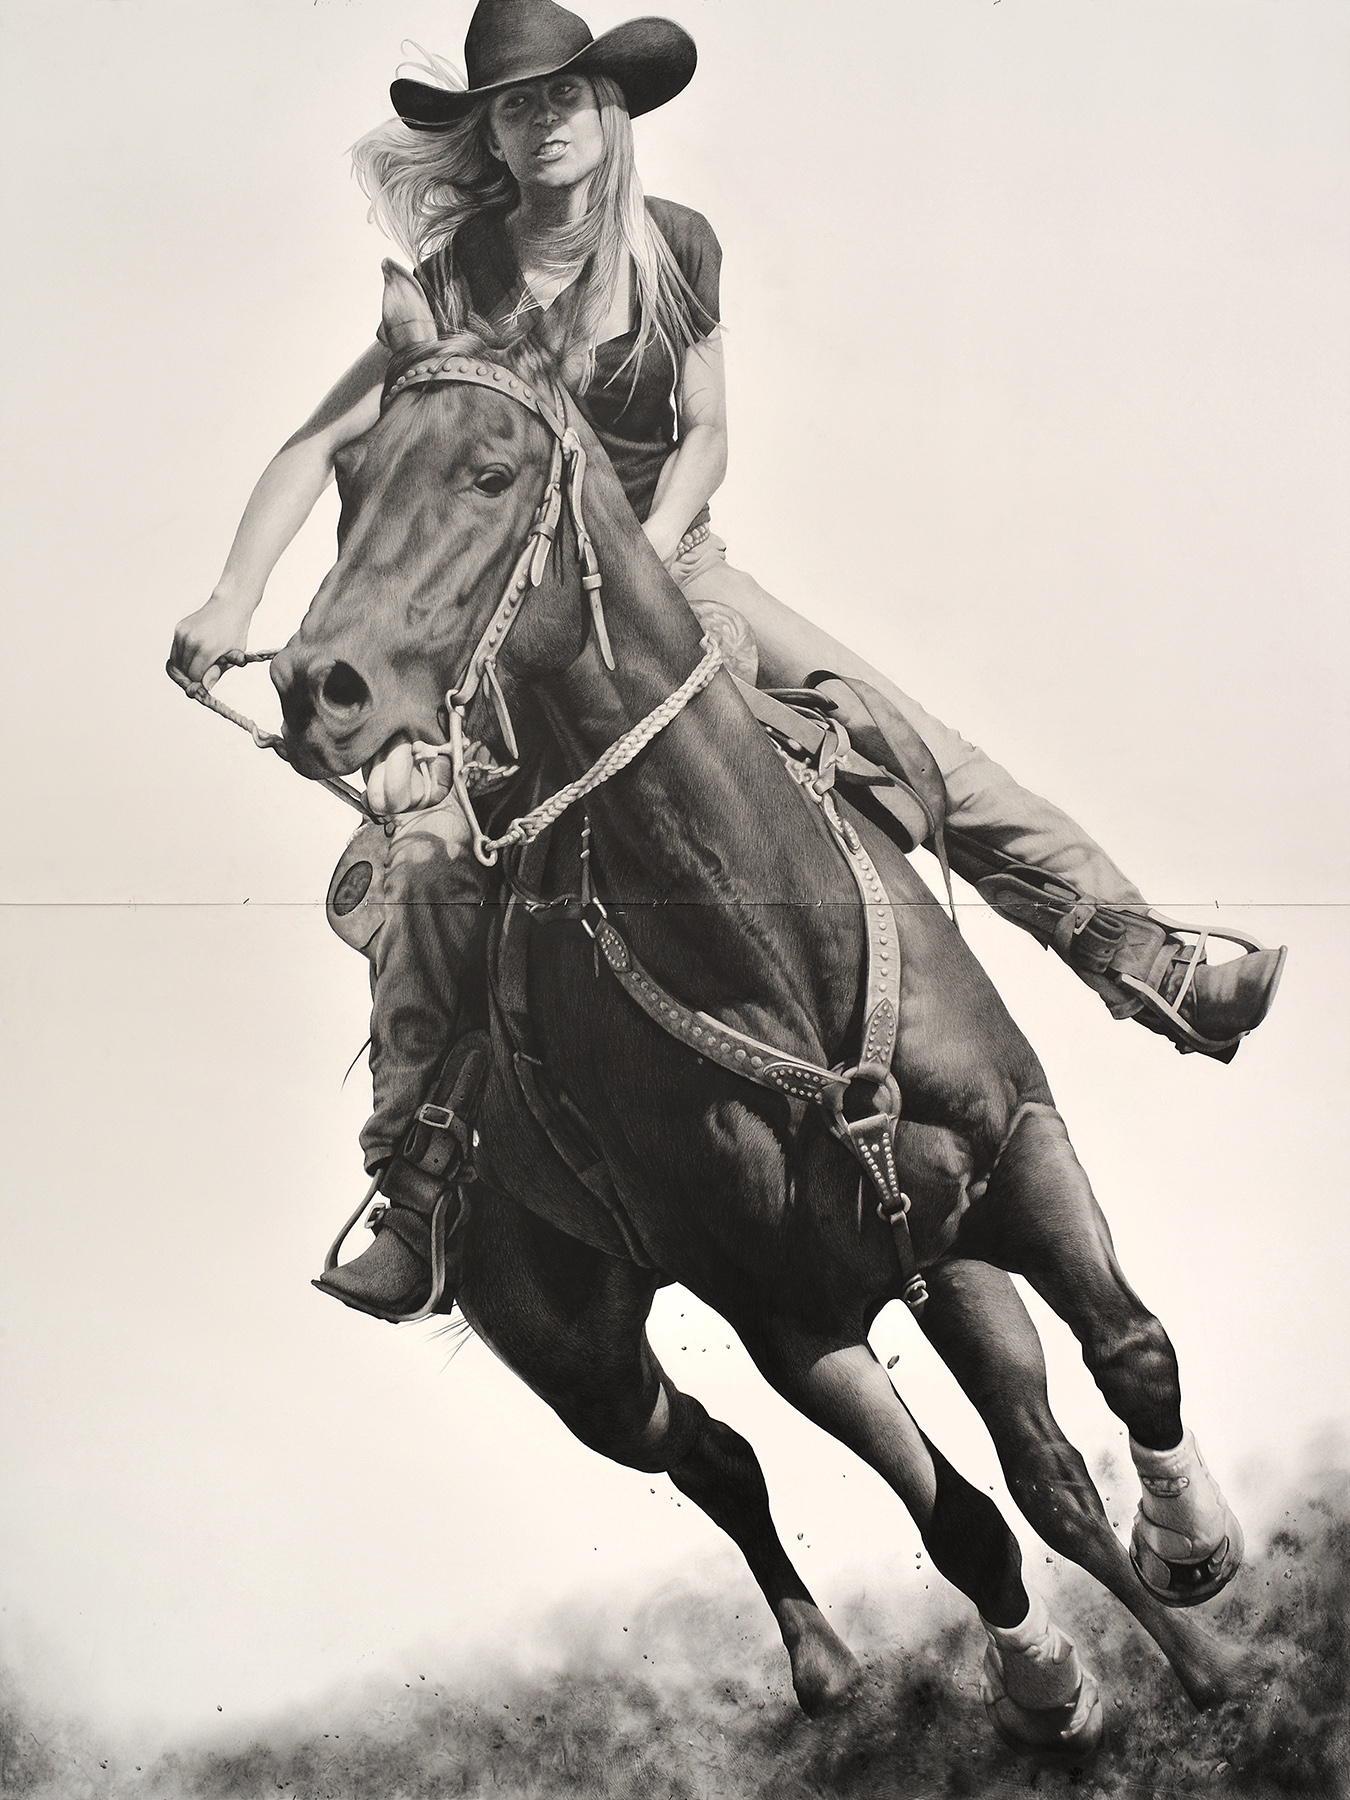 Karl Haendel, Rodeo 9, 2017, pencil and graphite powder on paper, 103 x 77 inches. Image courtesy of the artist.